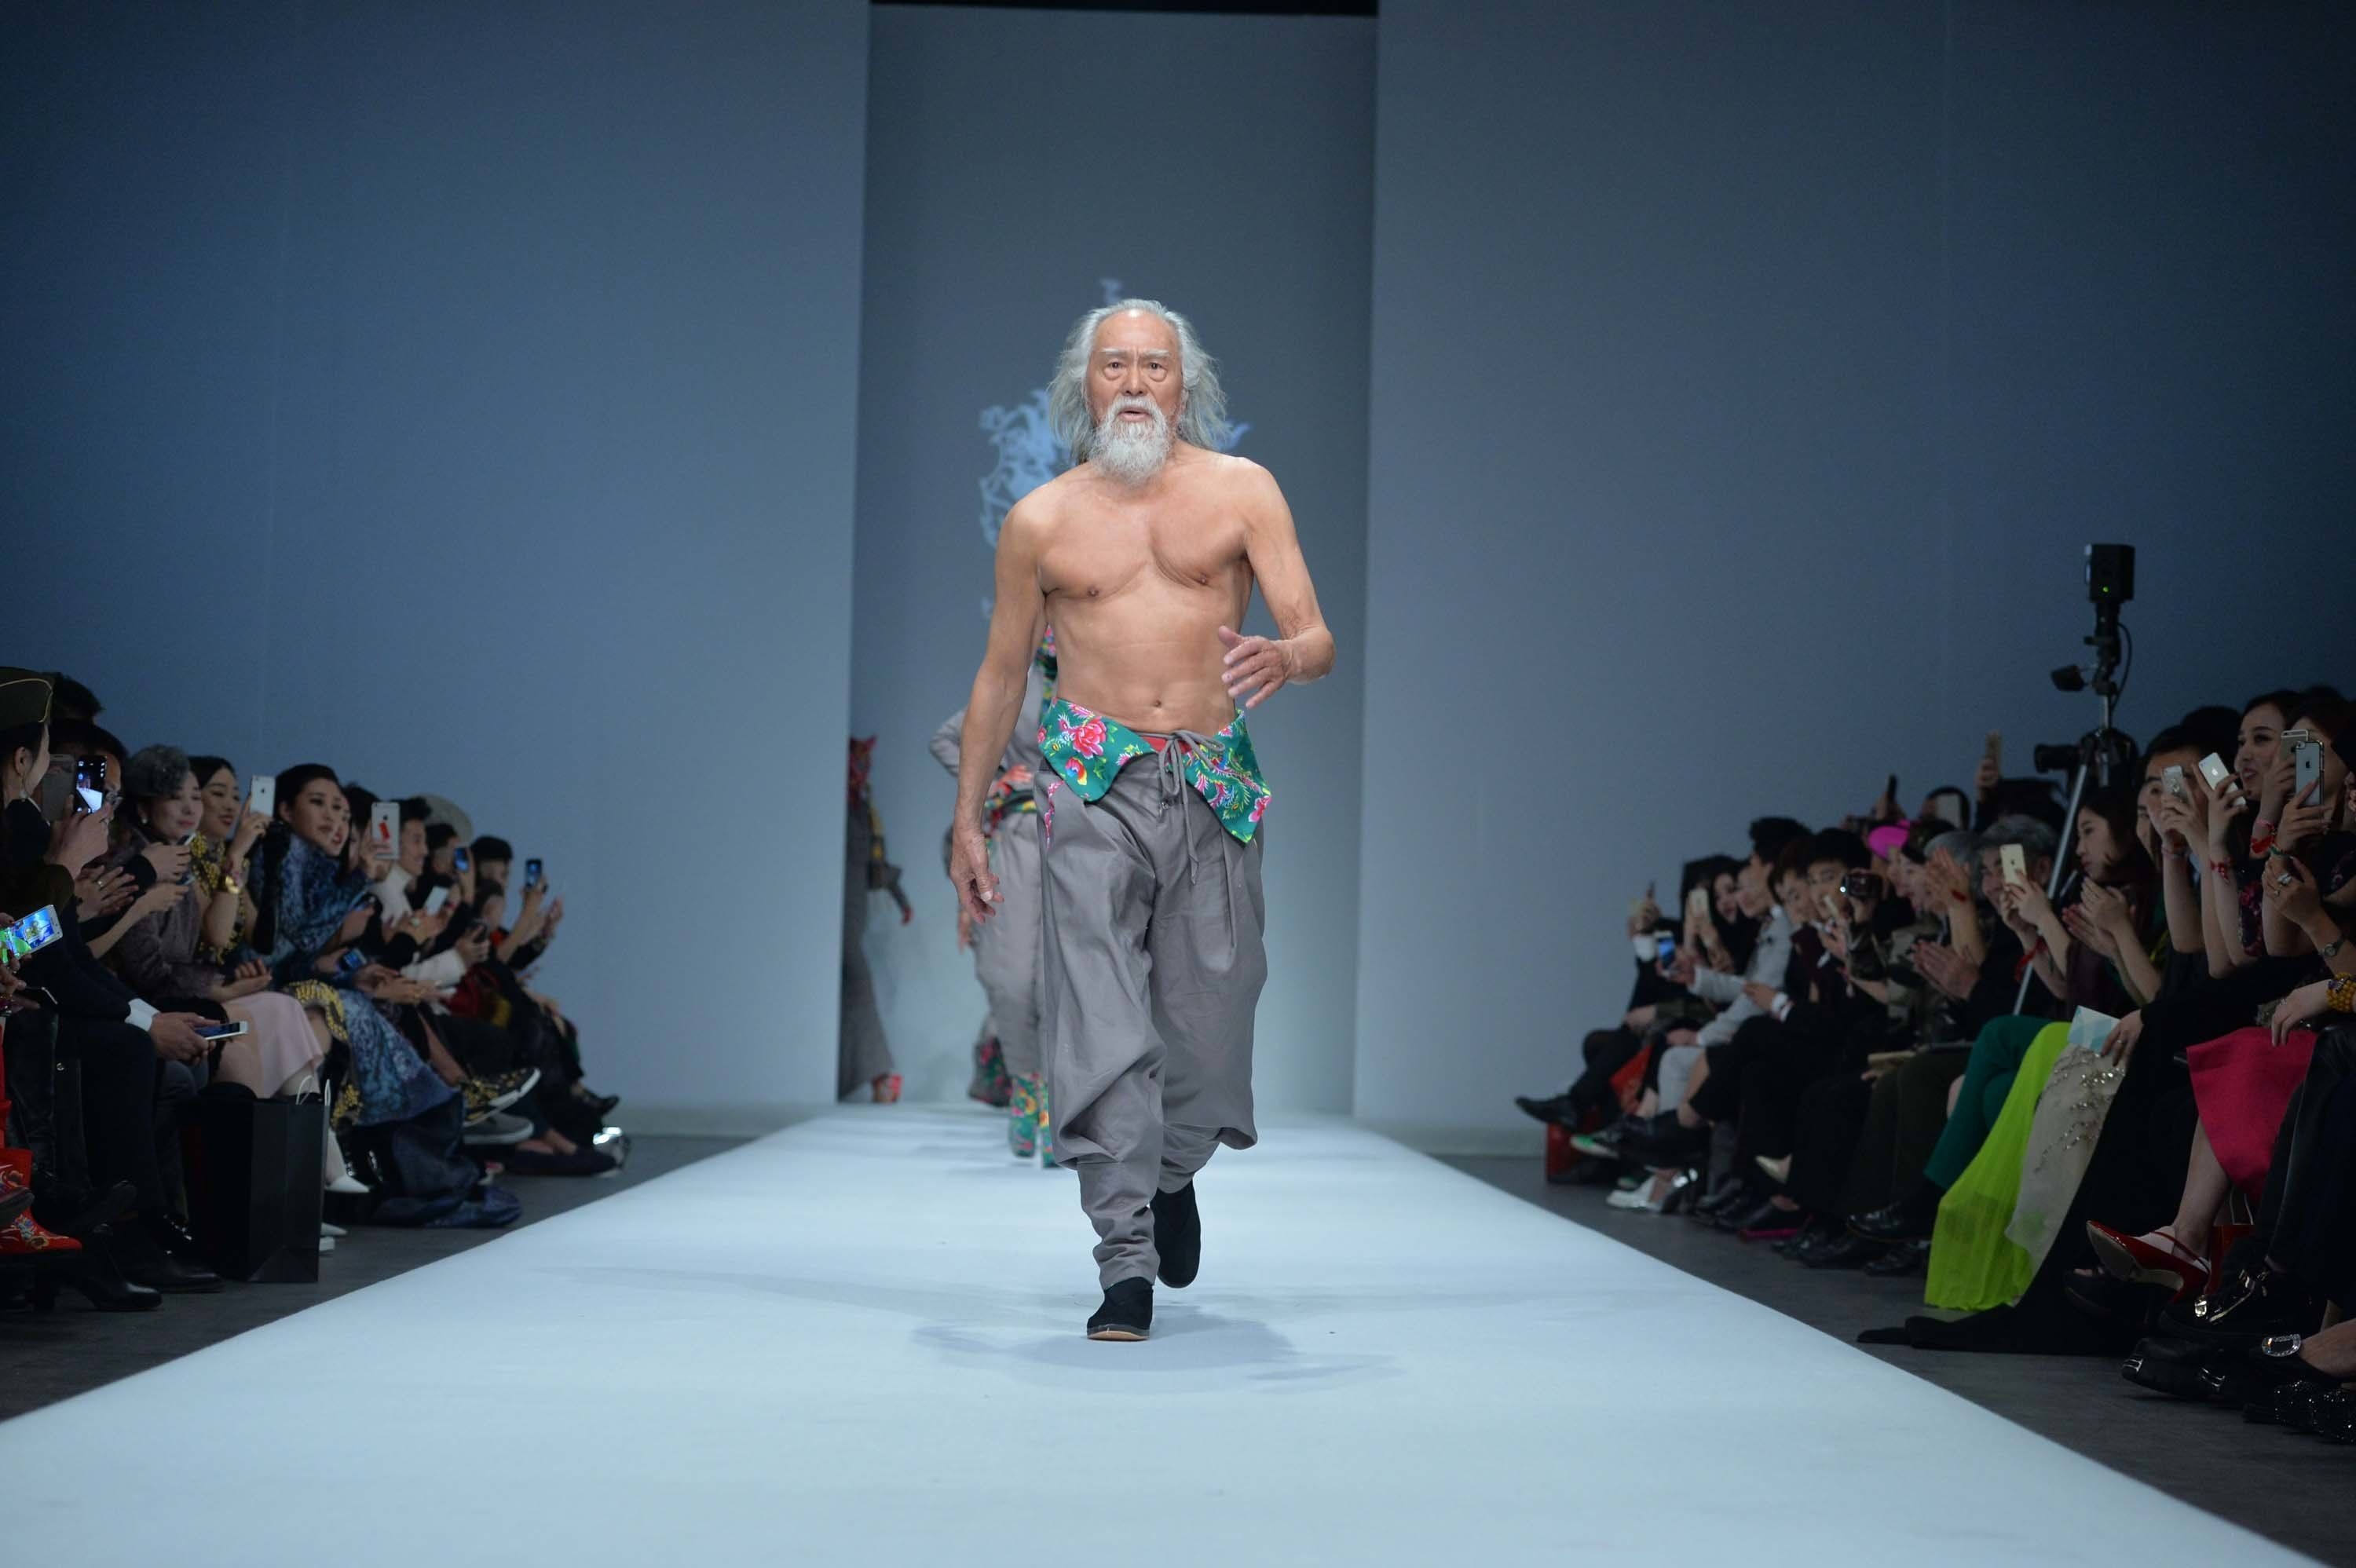 70 year old male model